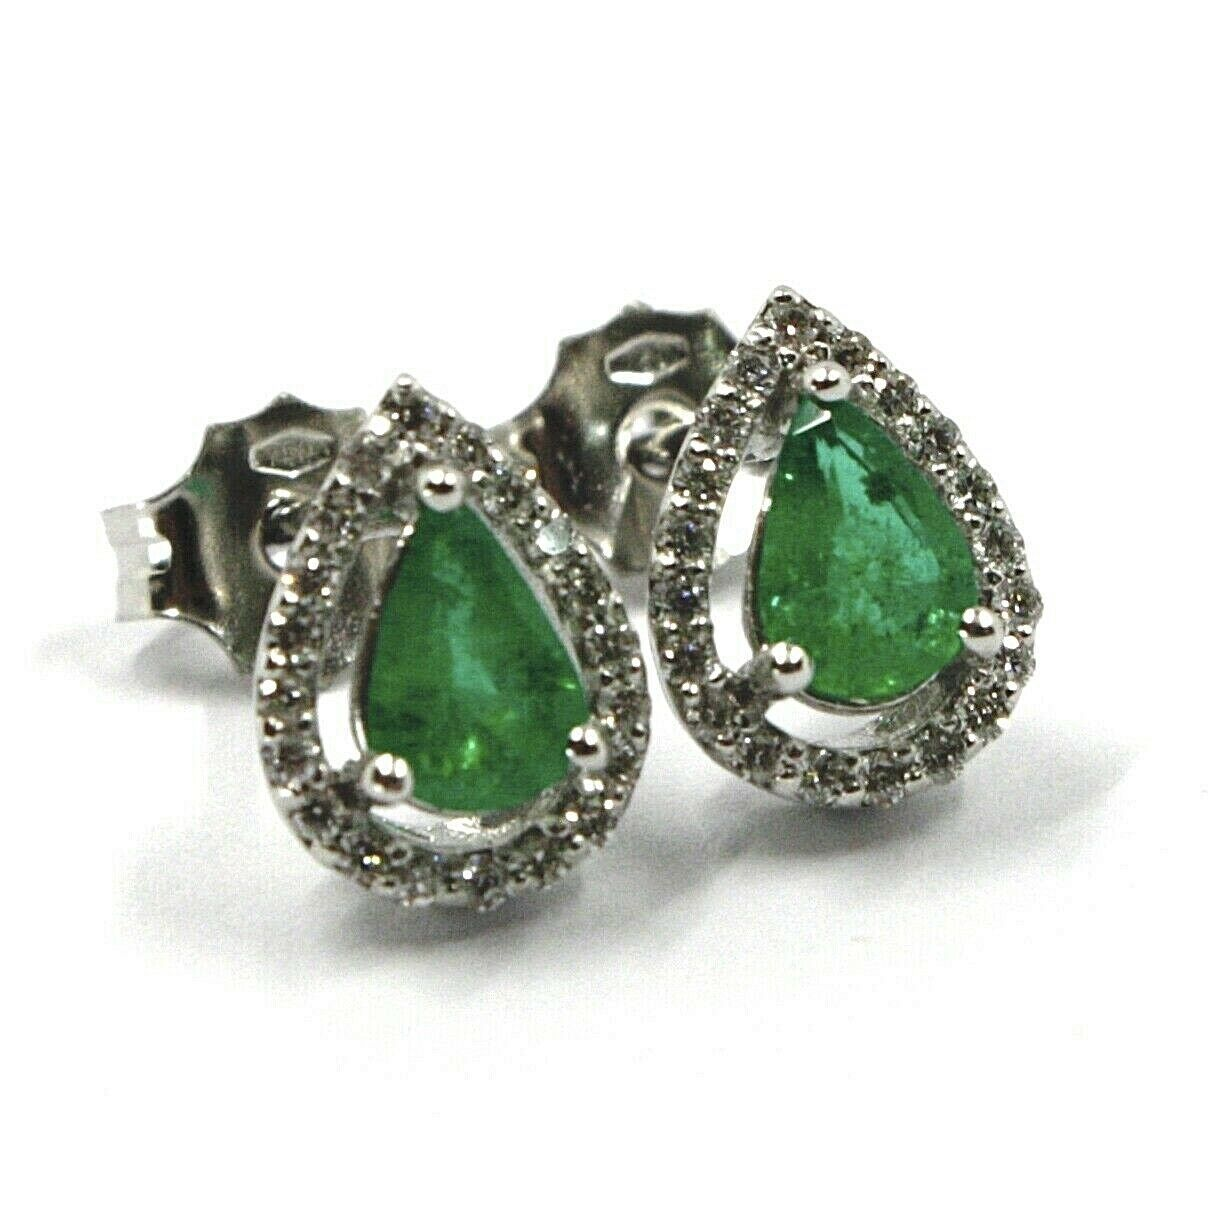 18K WHITE GOLD EARRINGS, EMERALD 0.55 CARATS, DROP CUT, DIAMONDS FRAME 0.18 CT